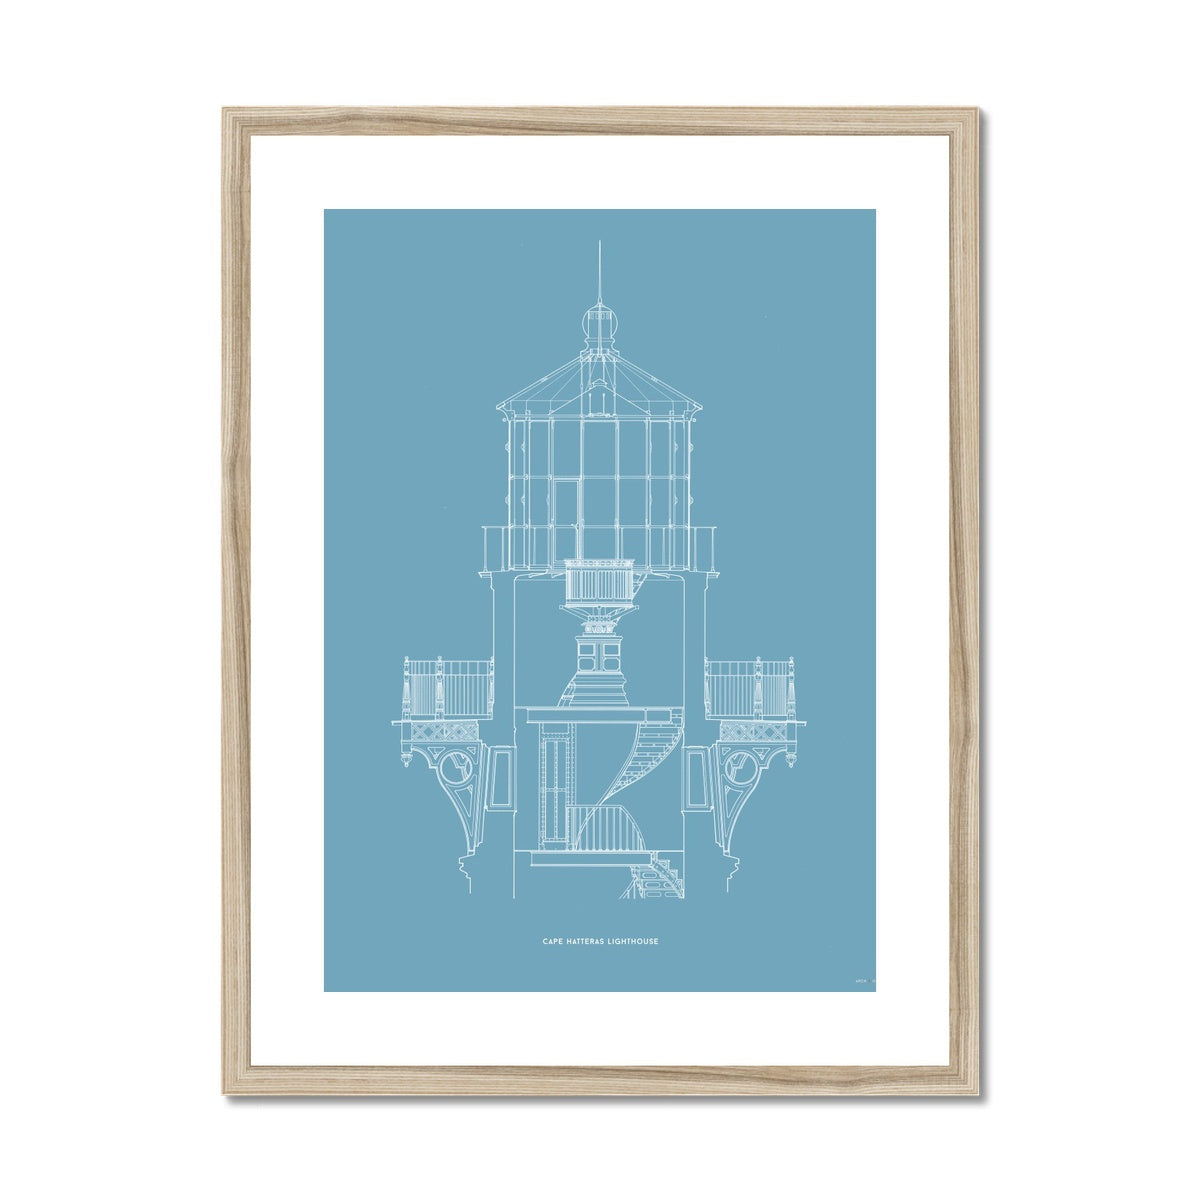 Cape Hatteras Lighthouse - Lantern Cross Section - Blue -  Framed & Mounted Print